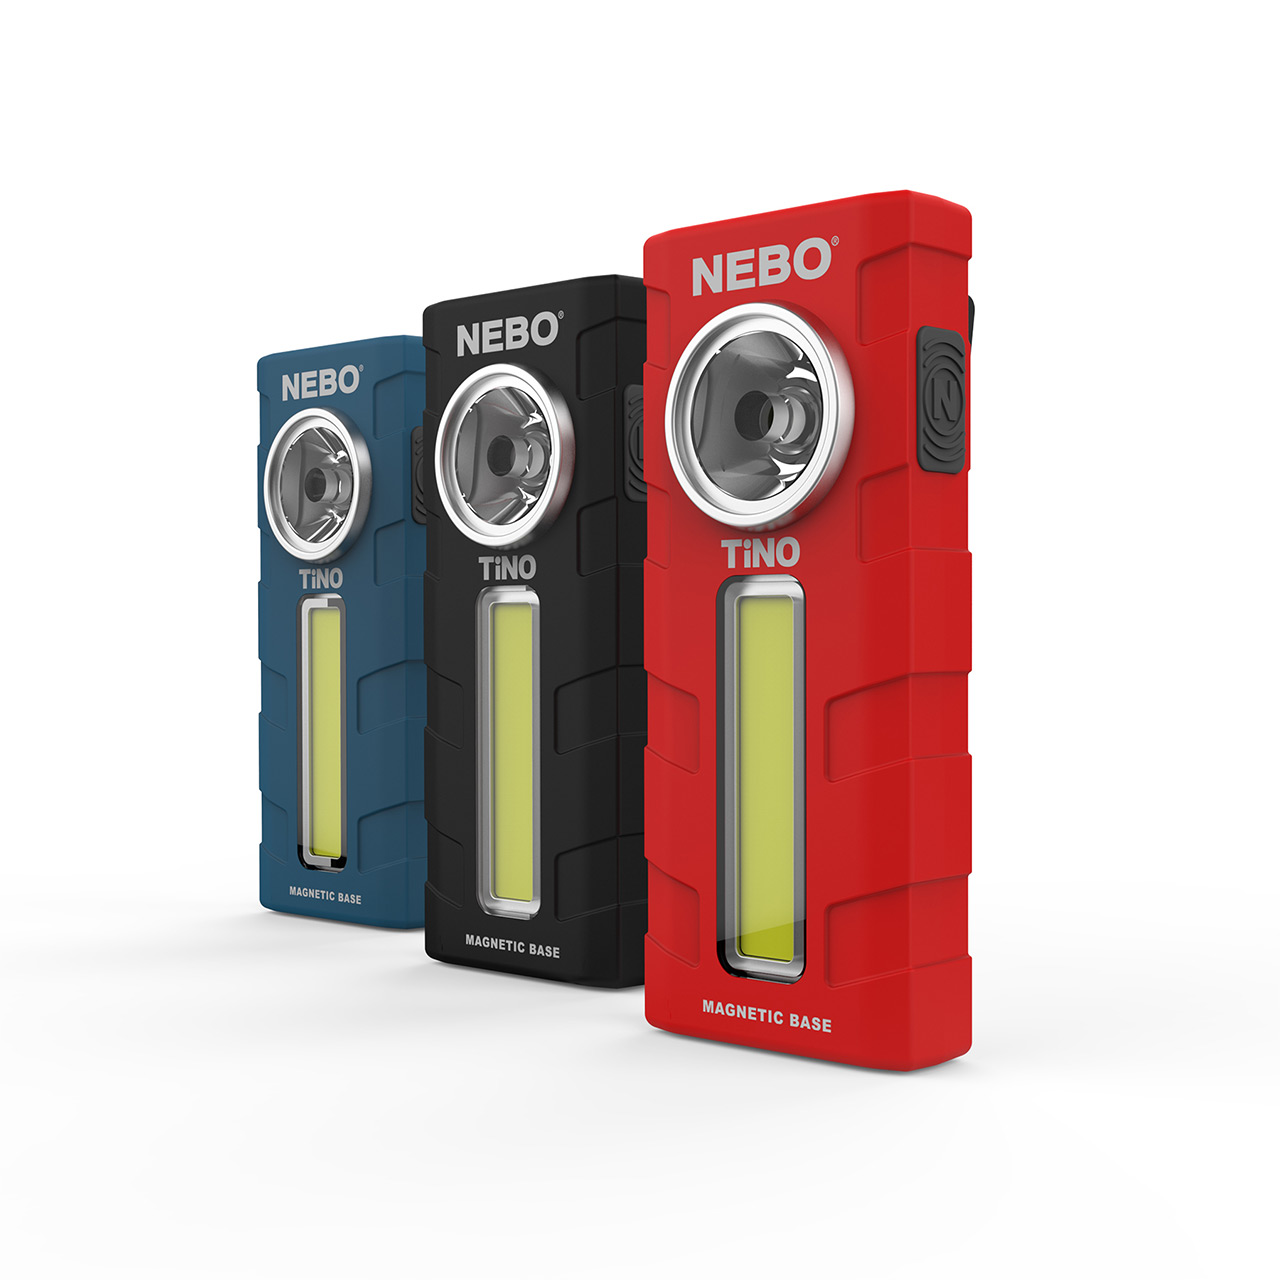 Nebo Tino Two-In-One Light